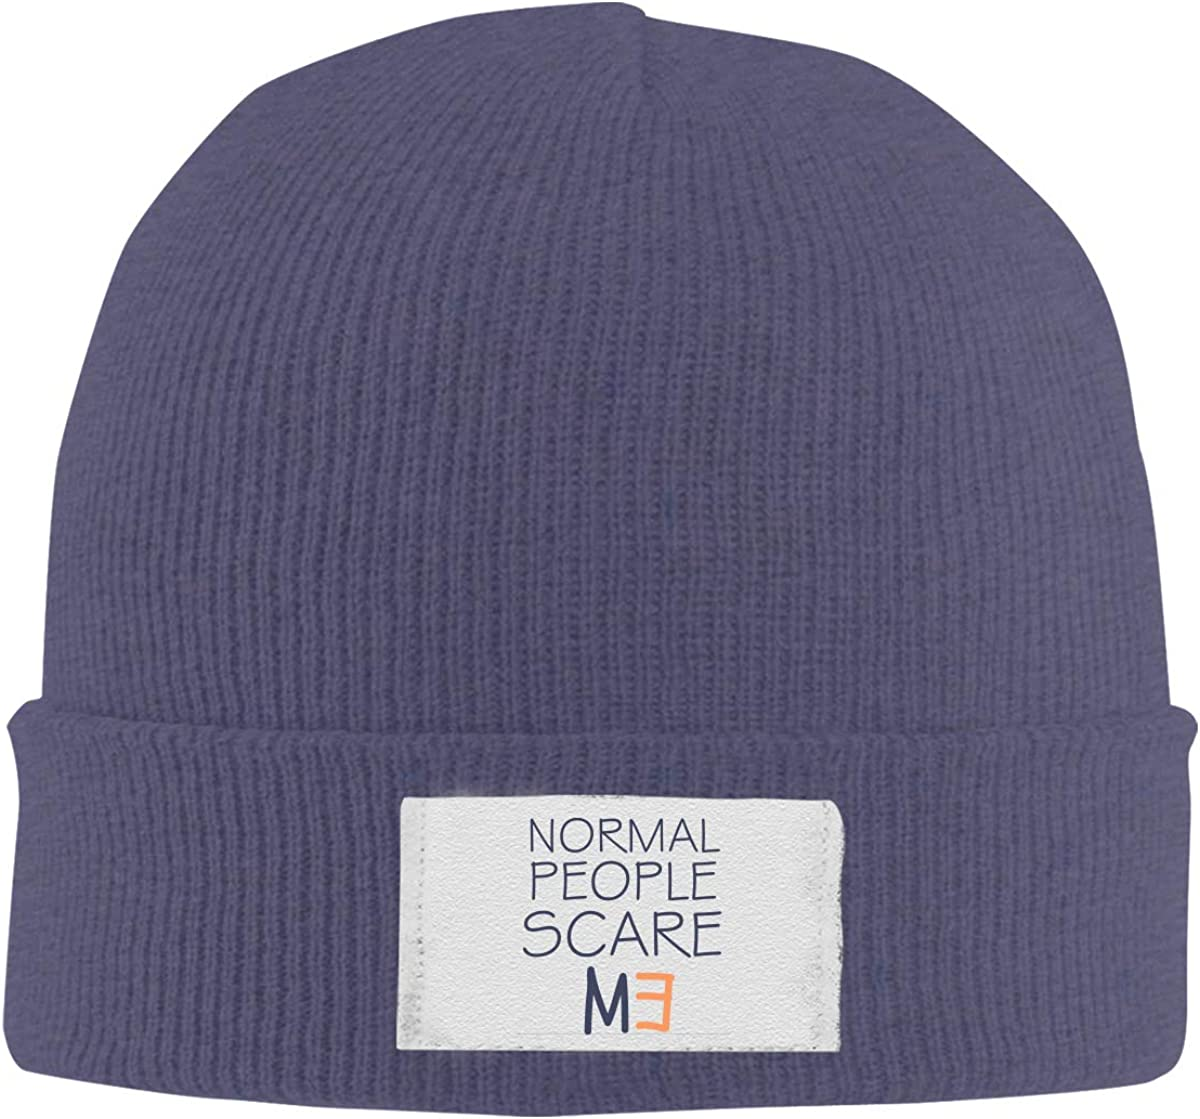 Stretchy Cuff Beanie Hat Black Dunpaiaa Skull Caps Normal People Scare Me Winter Warm Knit Hats